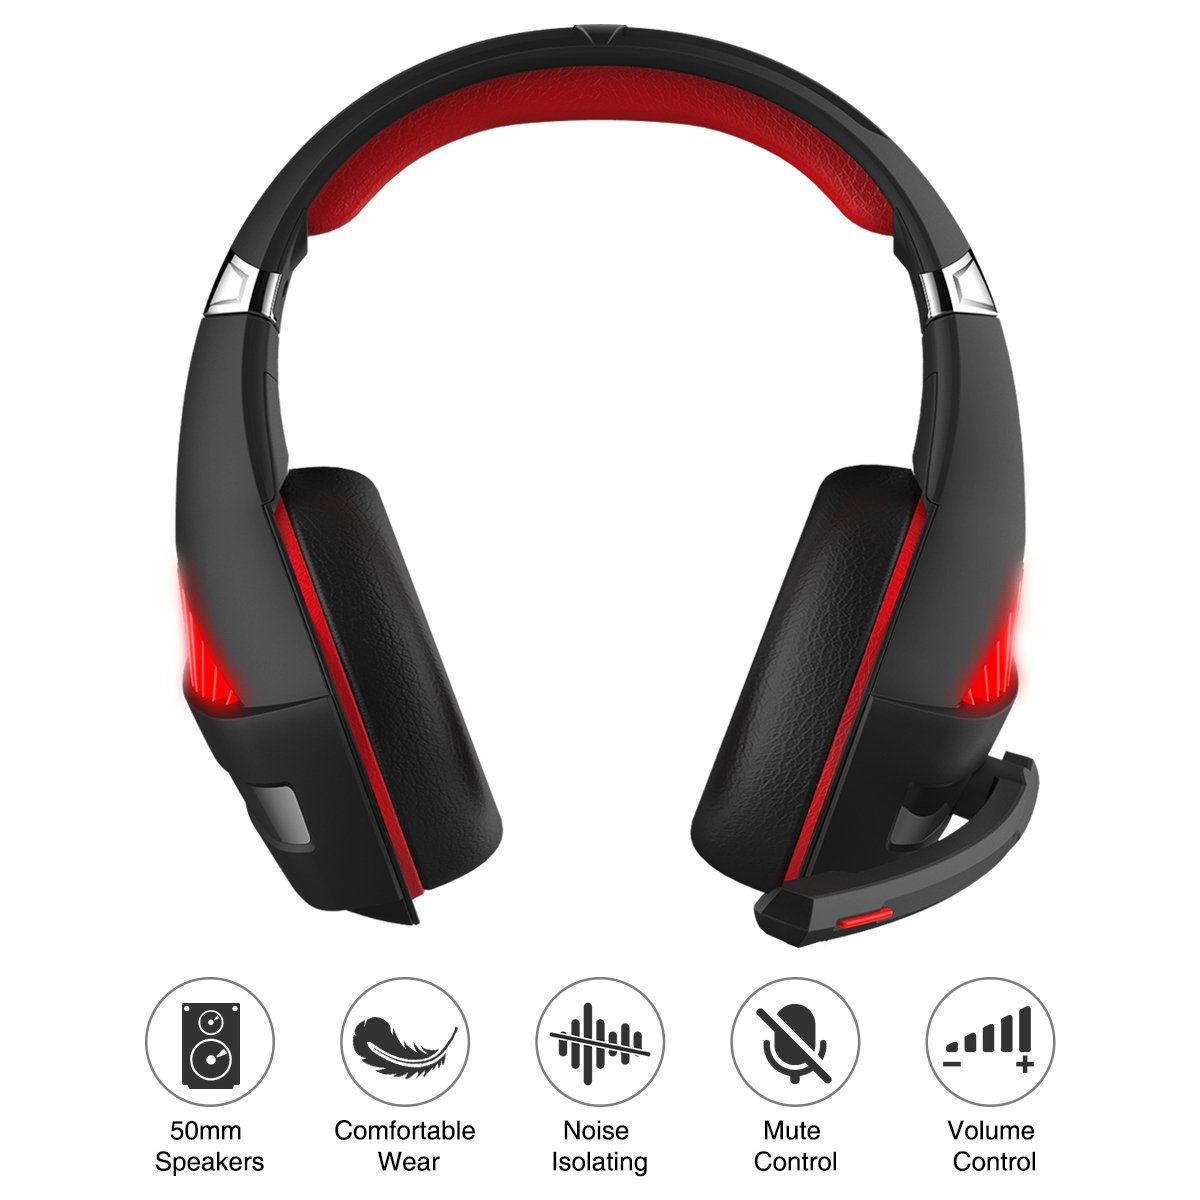 Gaming Headset, Beexcellent Gaming headphone with Microphone for PS4/Xbox One(Adapter Need)/Nintendo Switch(Audio)/PC/Controller/Cellphone-Easy Volume Control with LED Lighting 3.5MM Jack(GM-5 Red) by Beexcellent (Image #3)